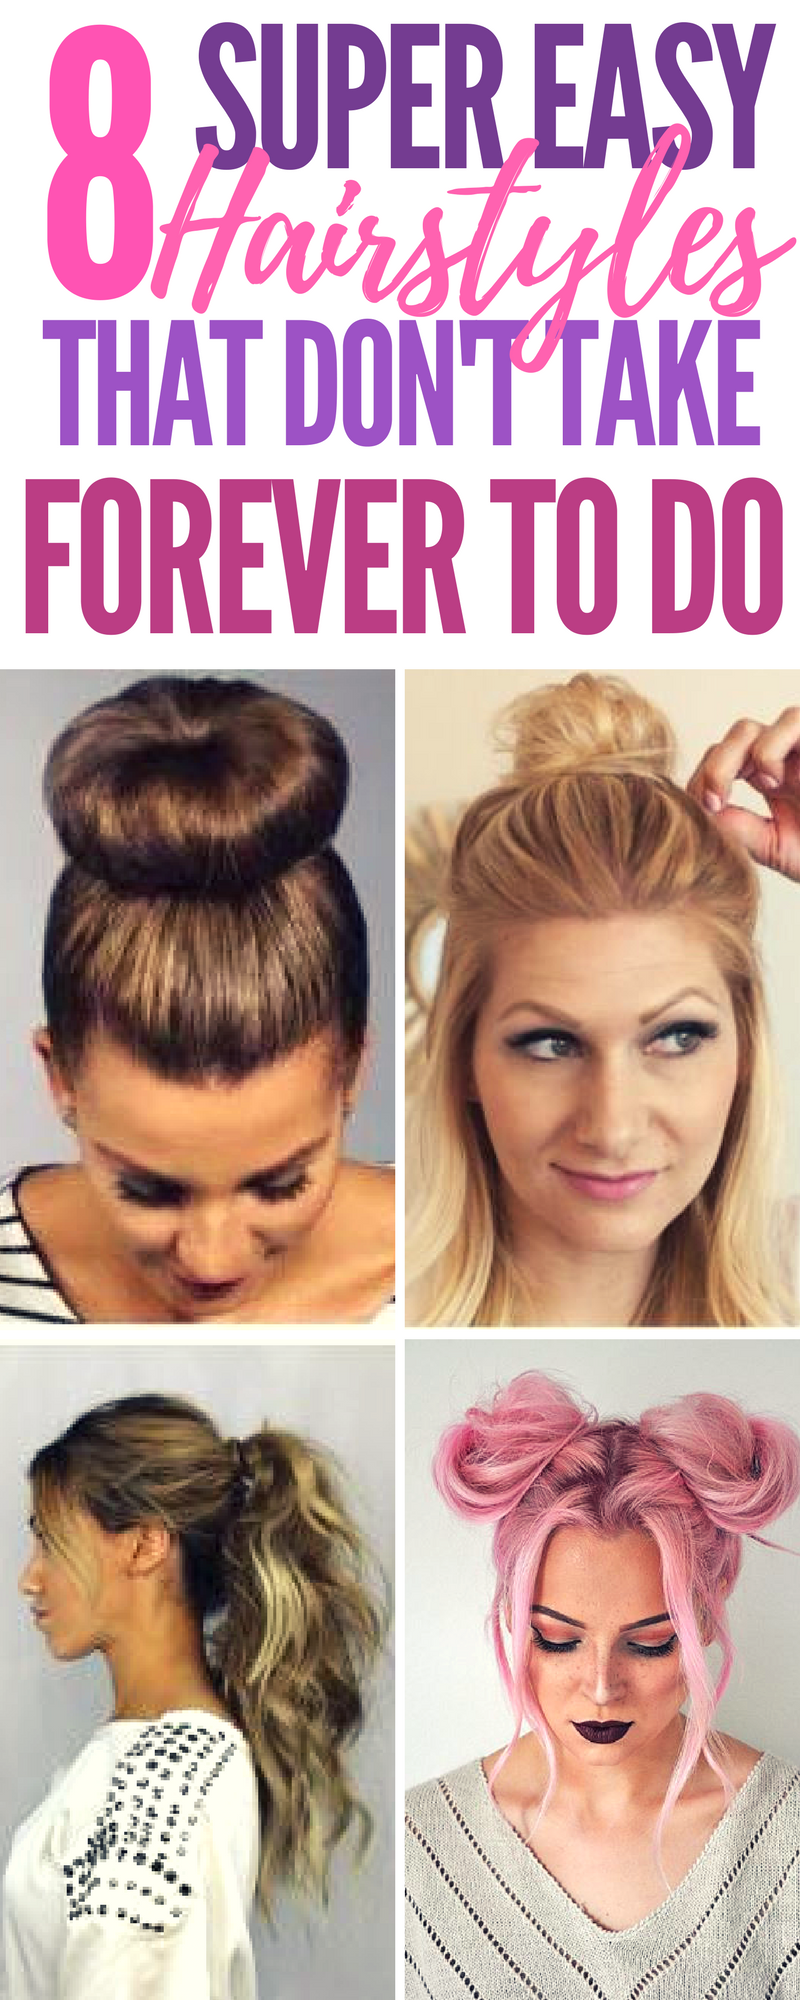 super easy updo hairstyles that donut take forever to do strive